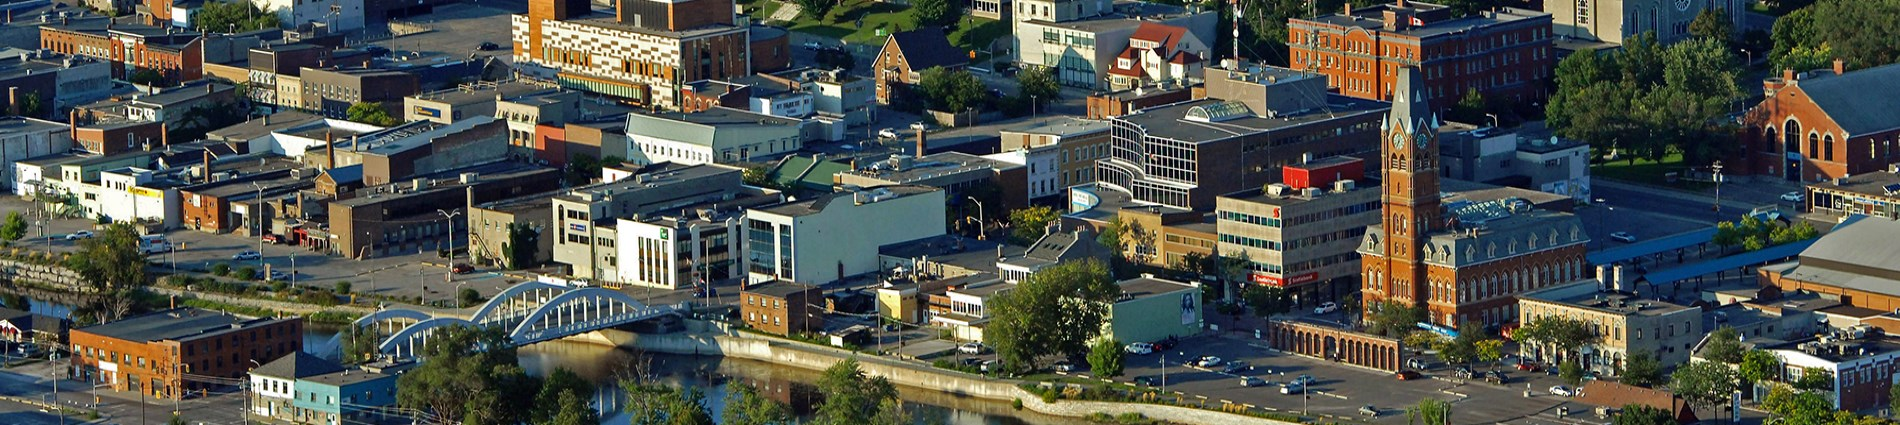 Aerial of downtown Belleville